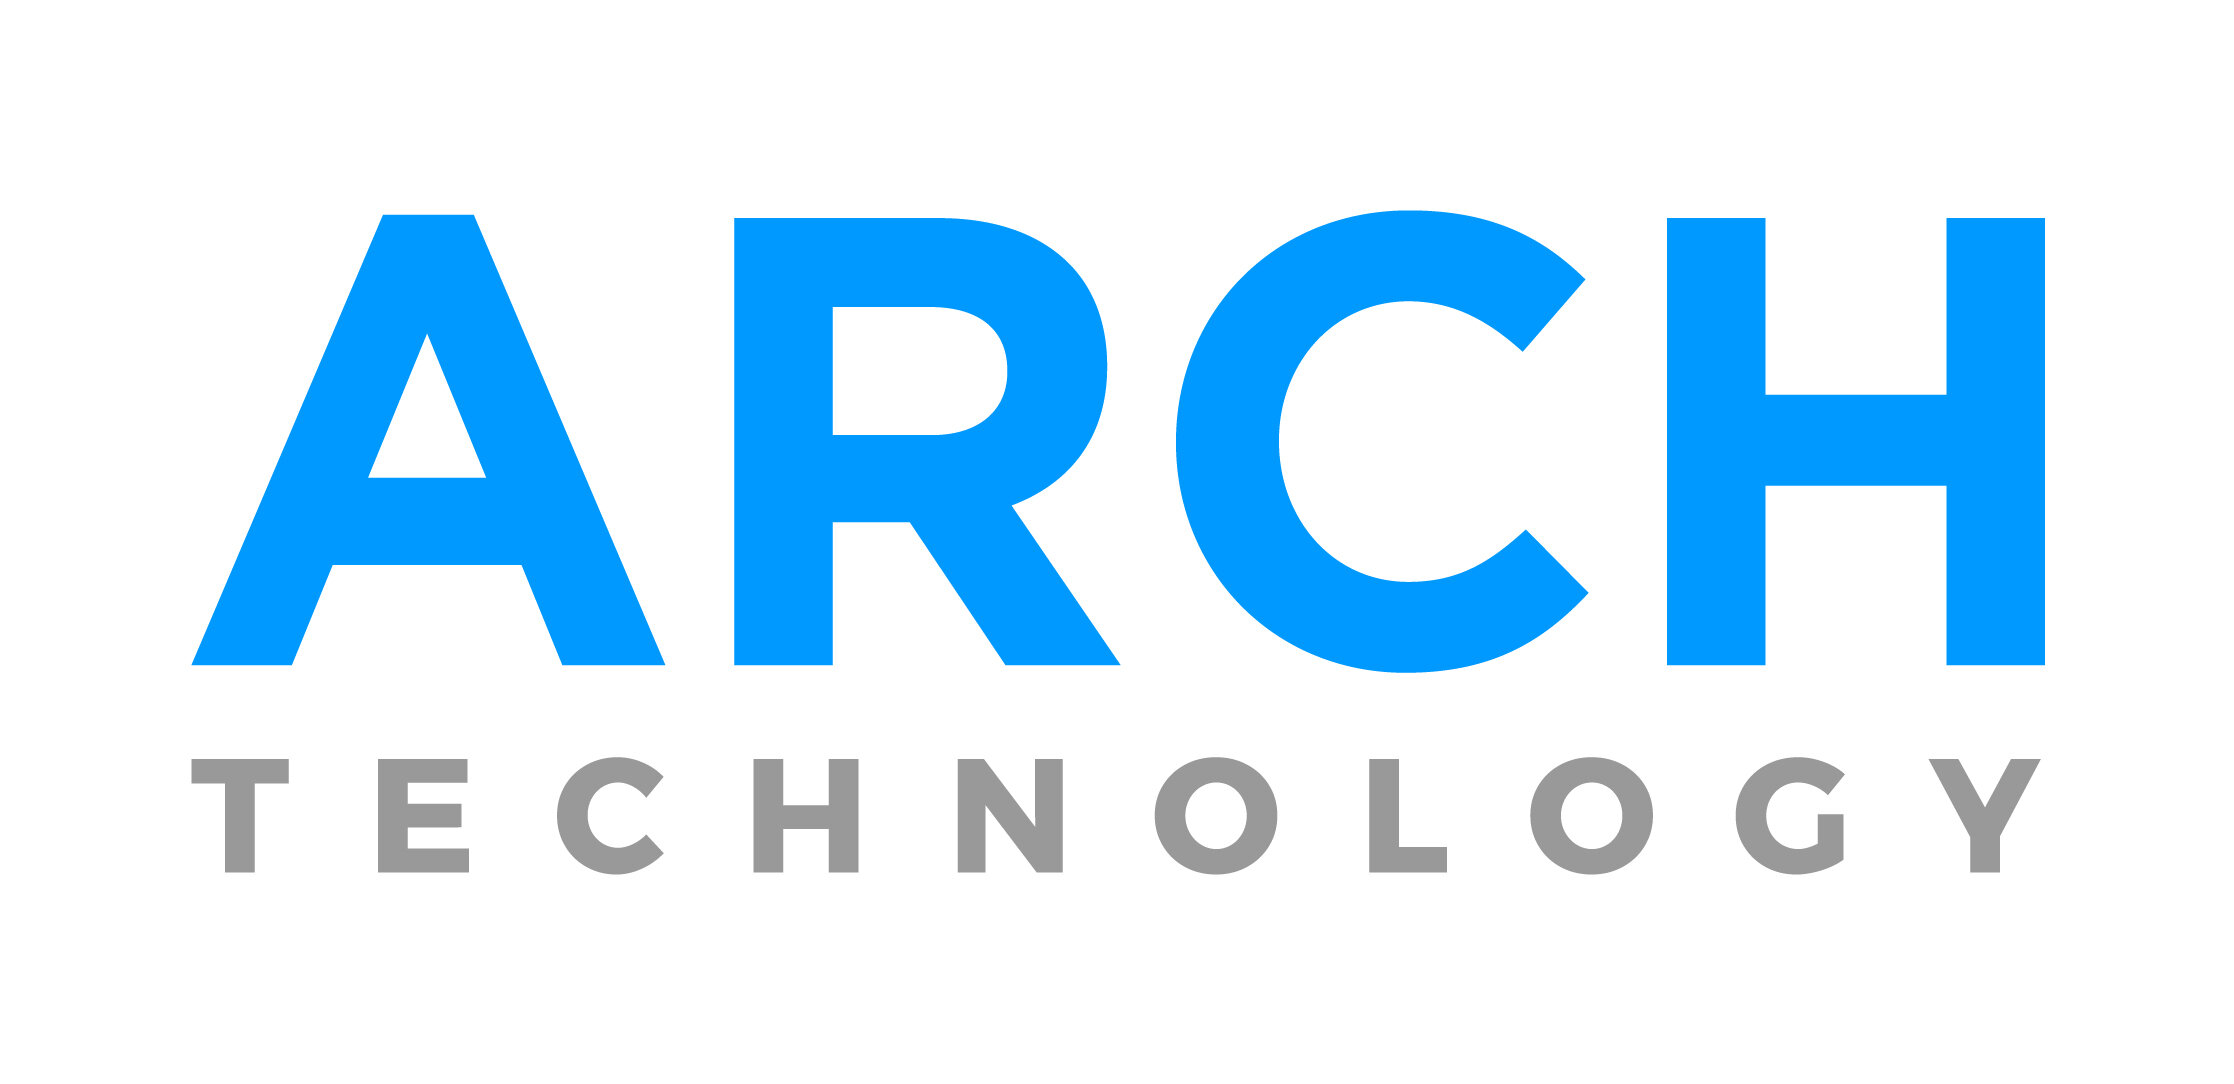 arch technology _ RGBcolor-01.jpg